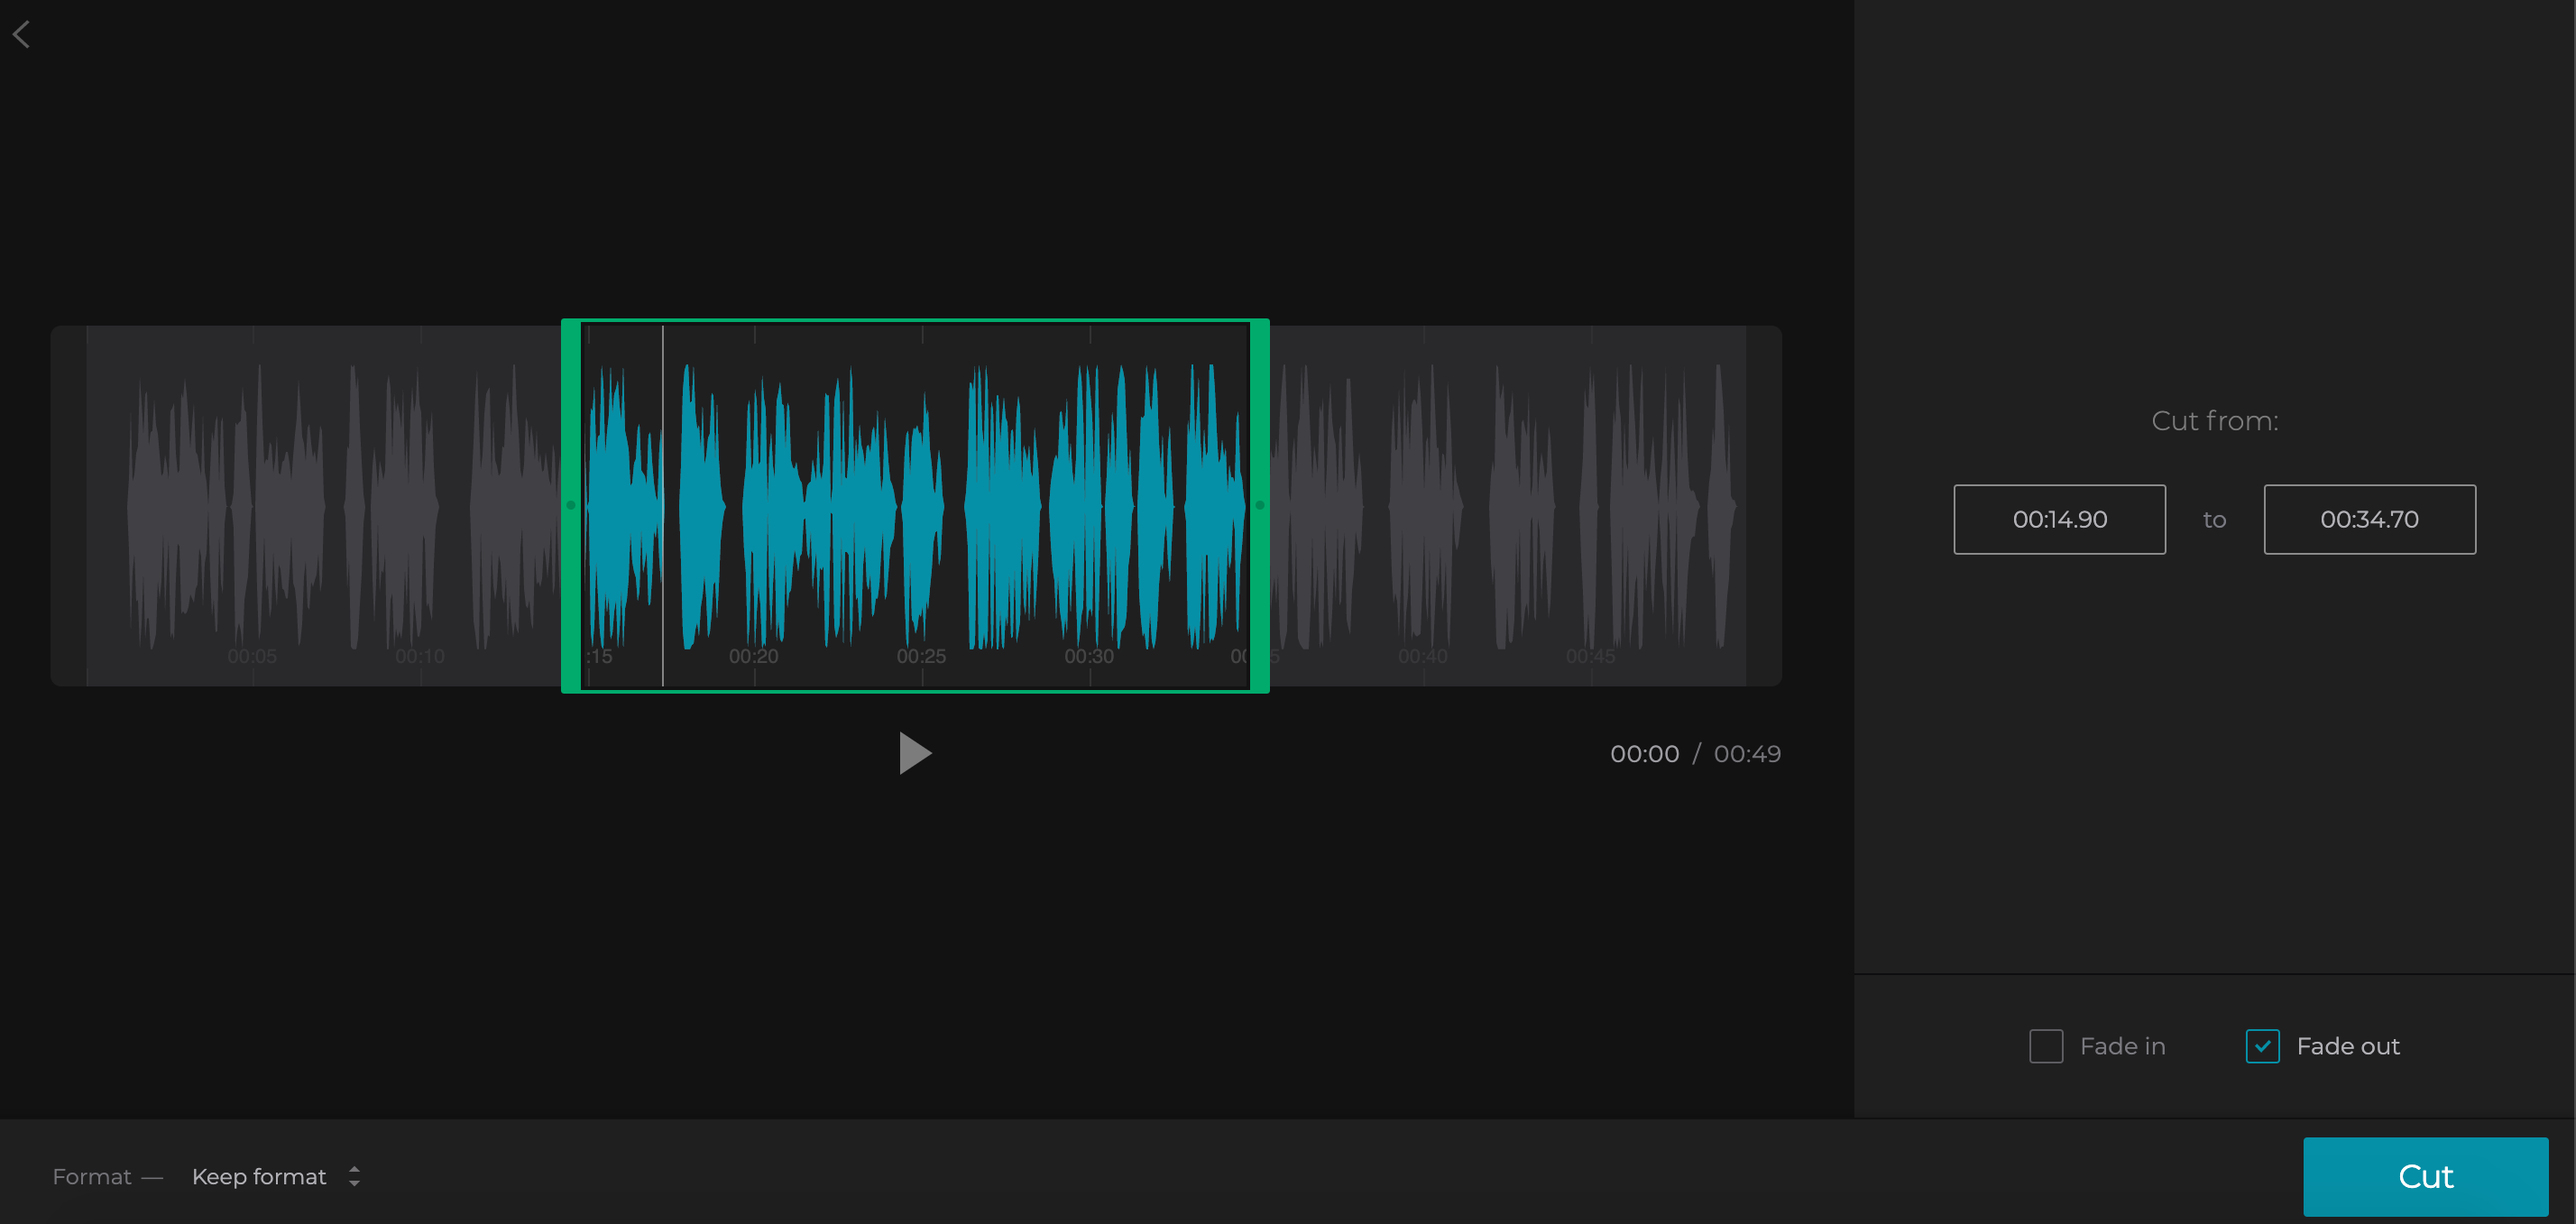 Cut the WAV audio by moving the markers